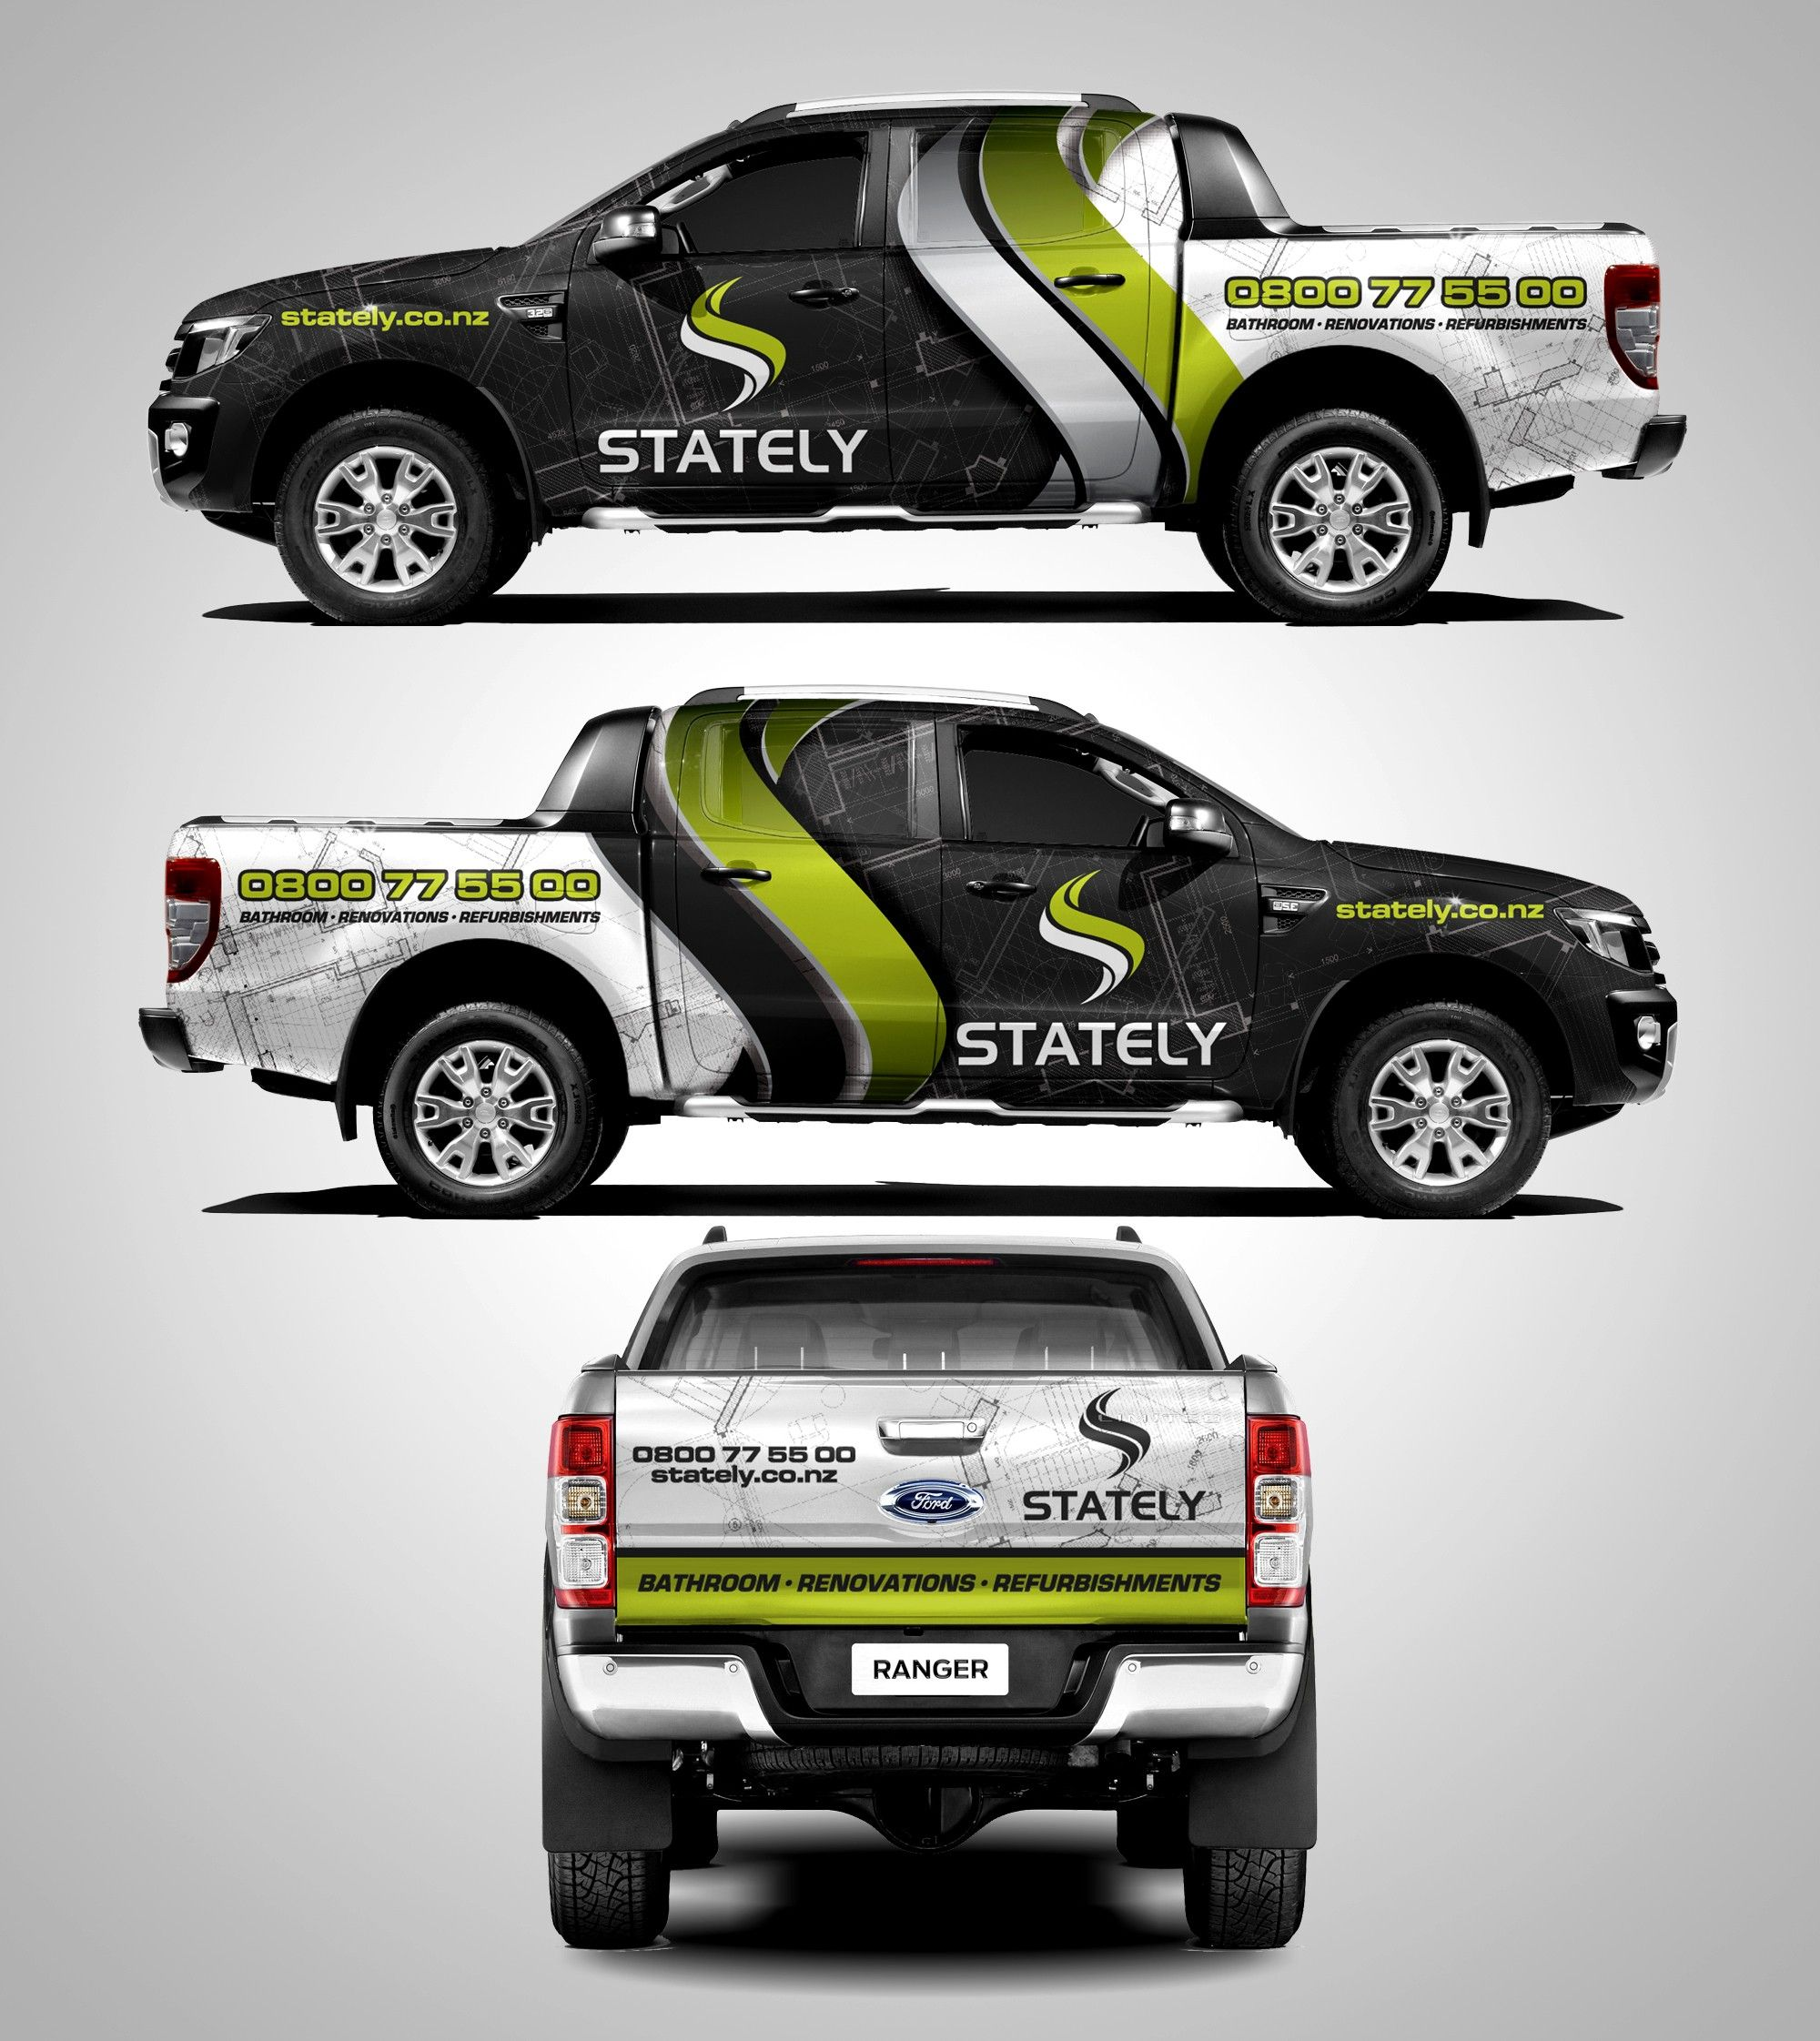 Car sticker design pinterest - Check Out This Car Truck Or Van Wrap From The 99designs Community